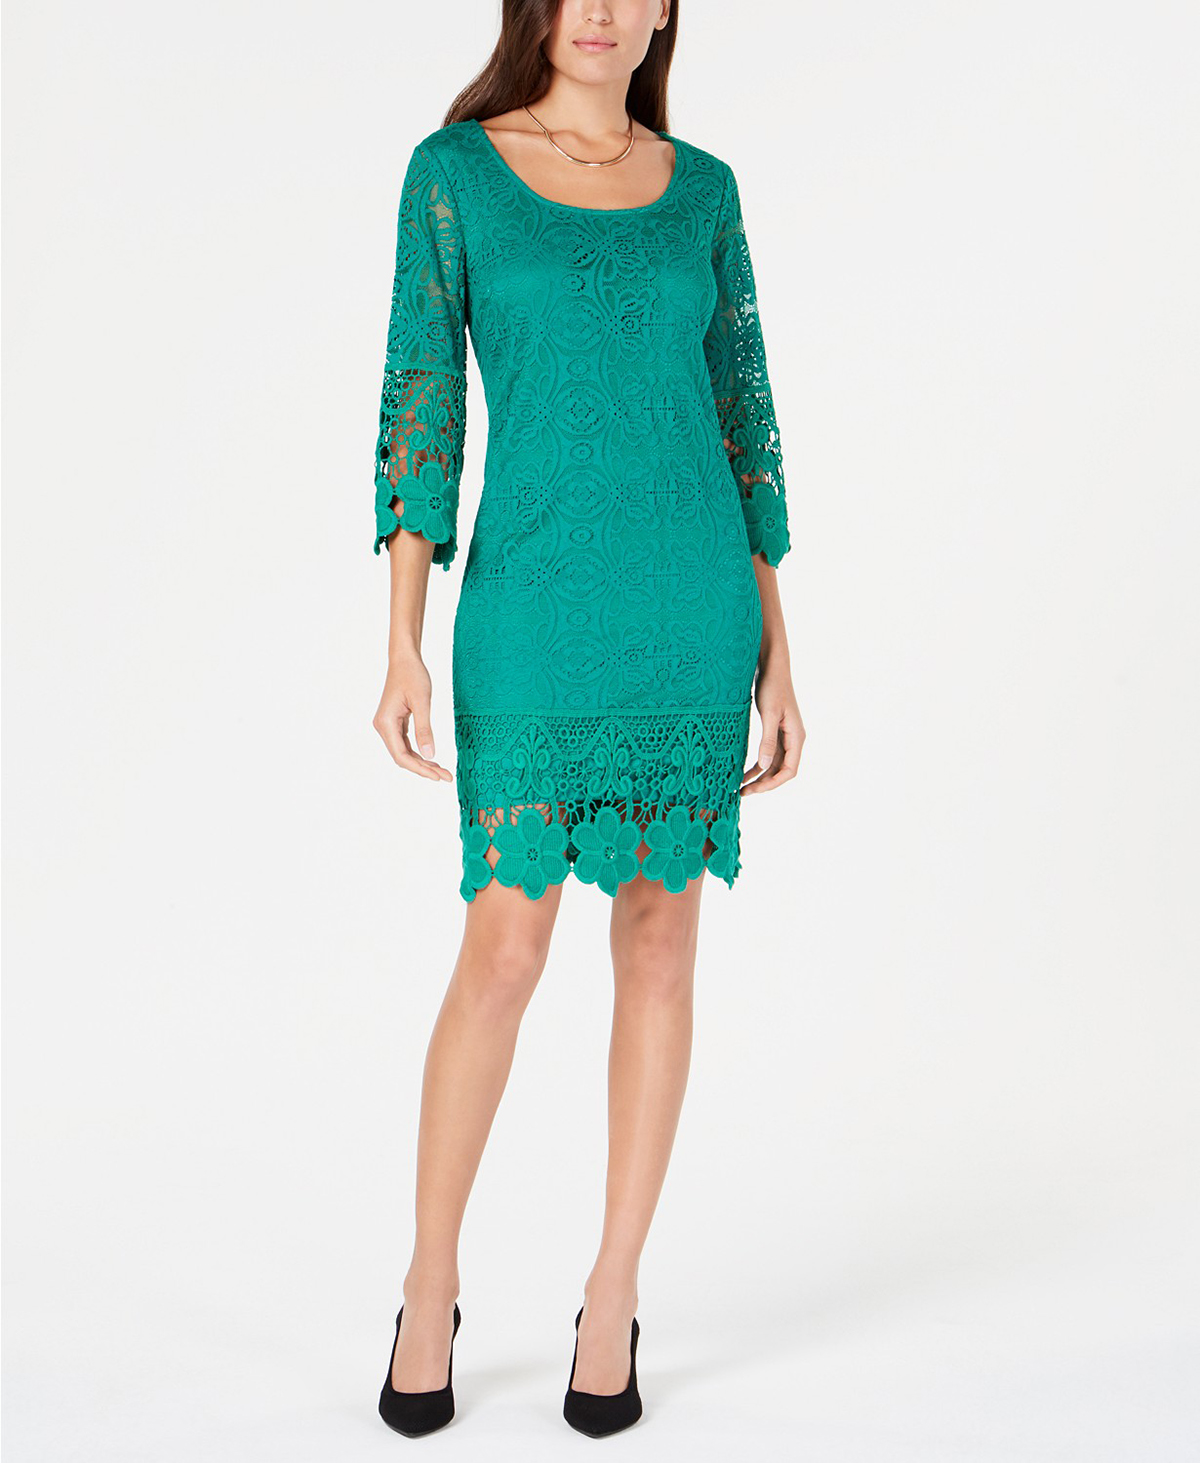 Alfani Dress Teal